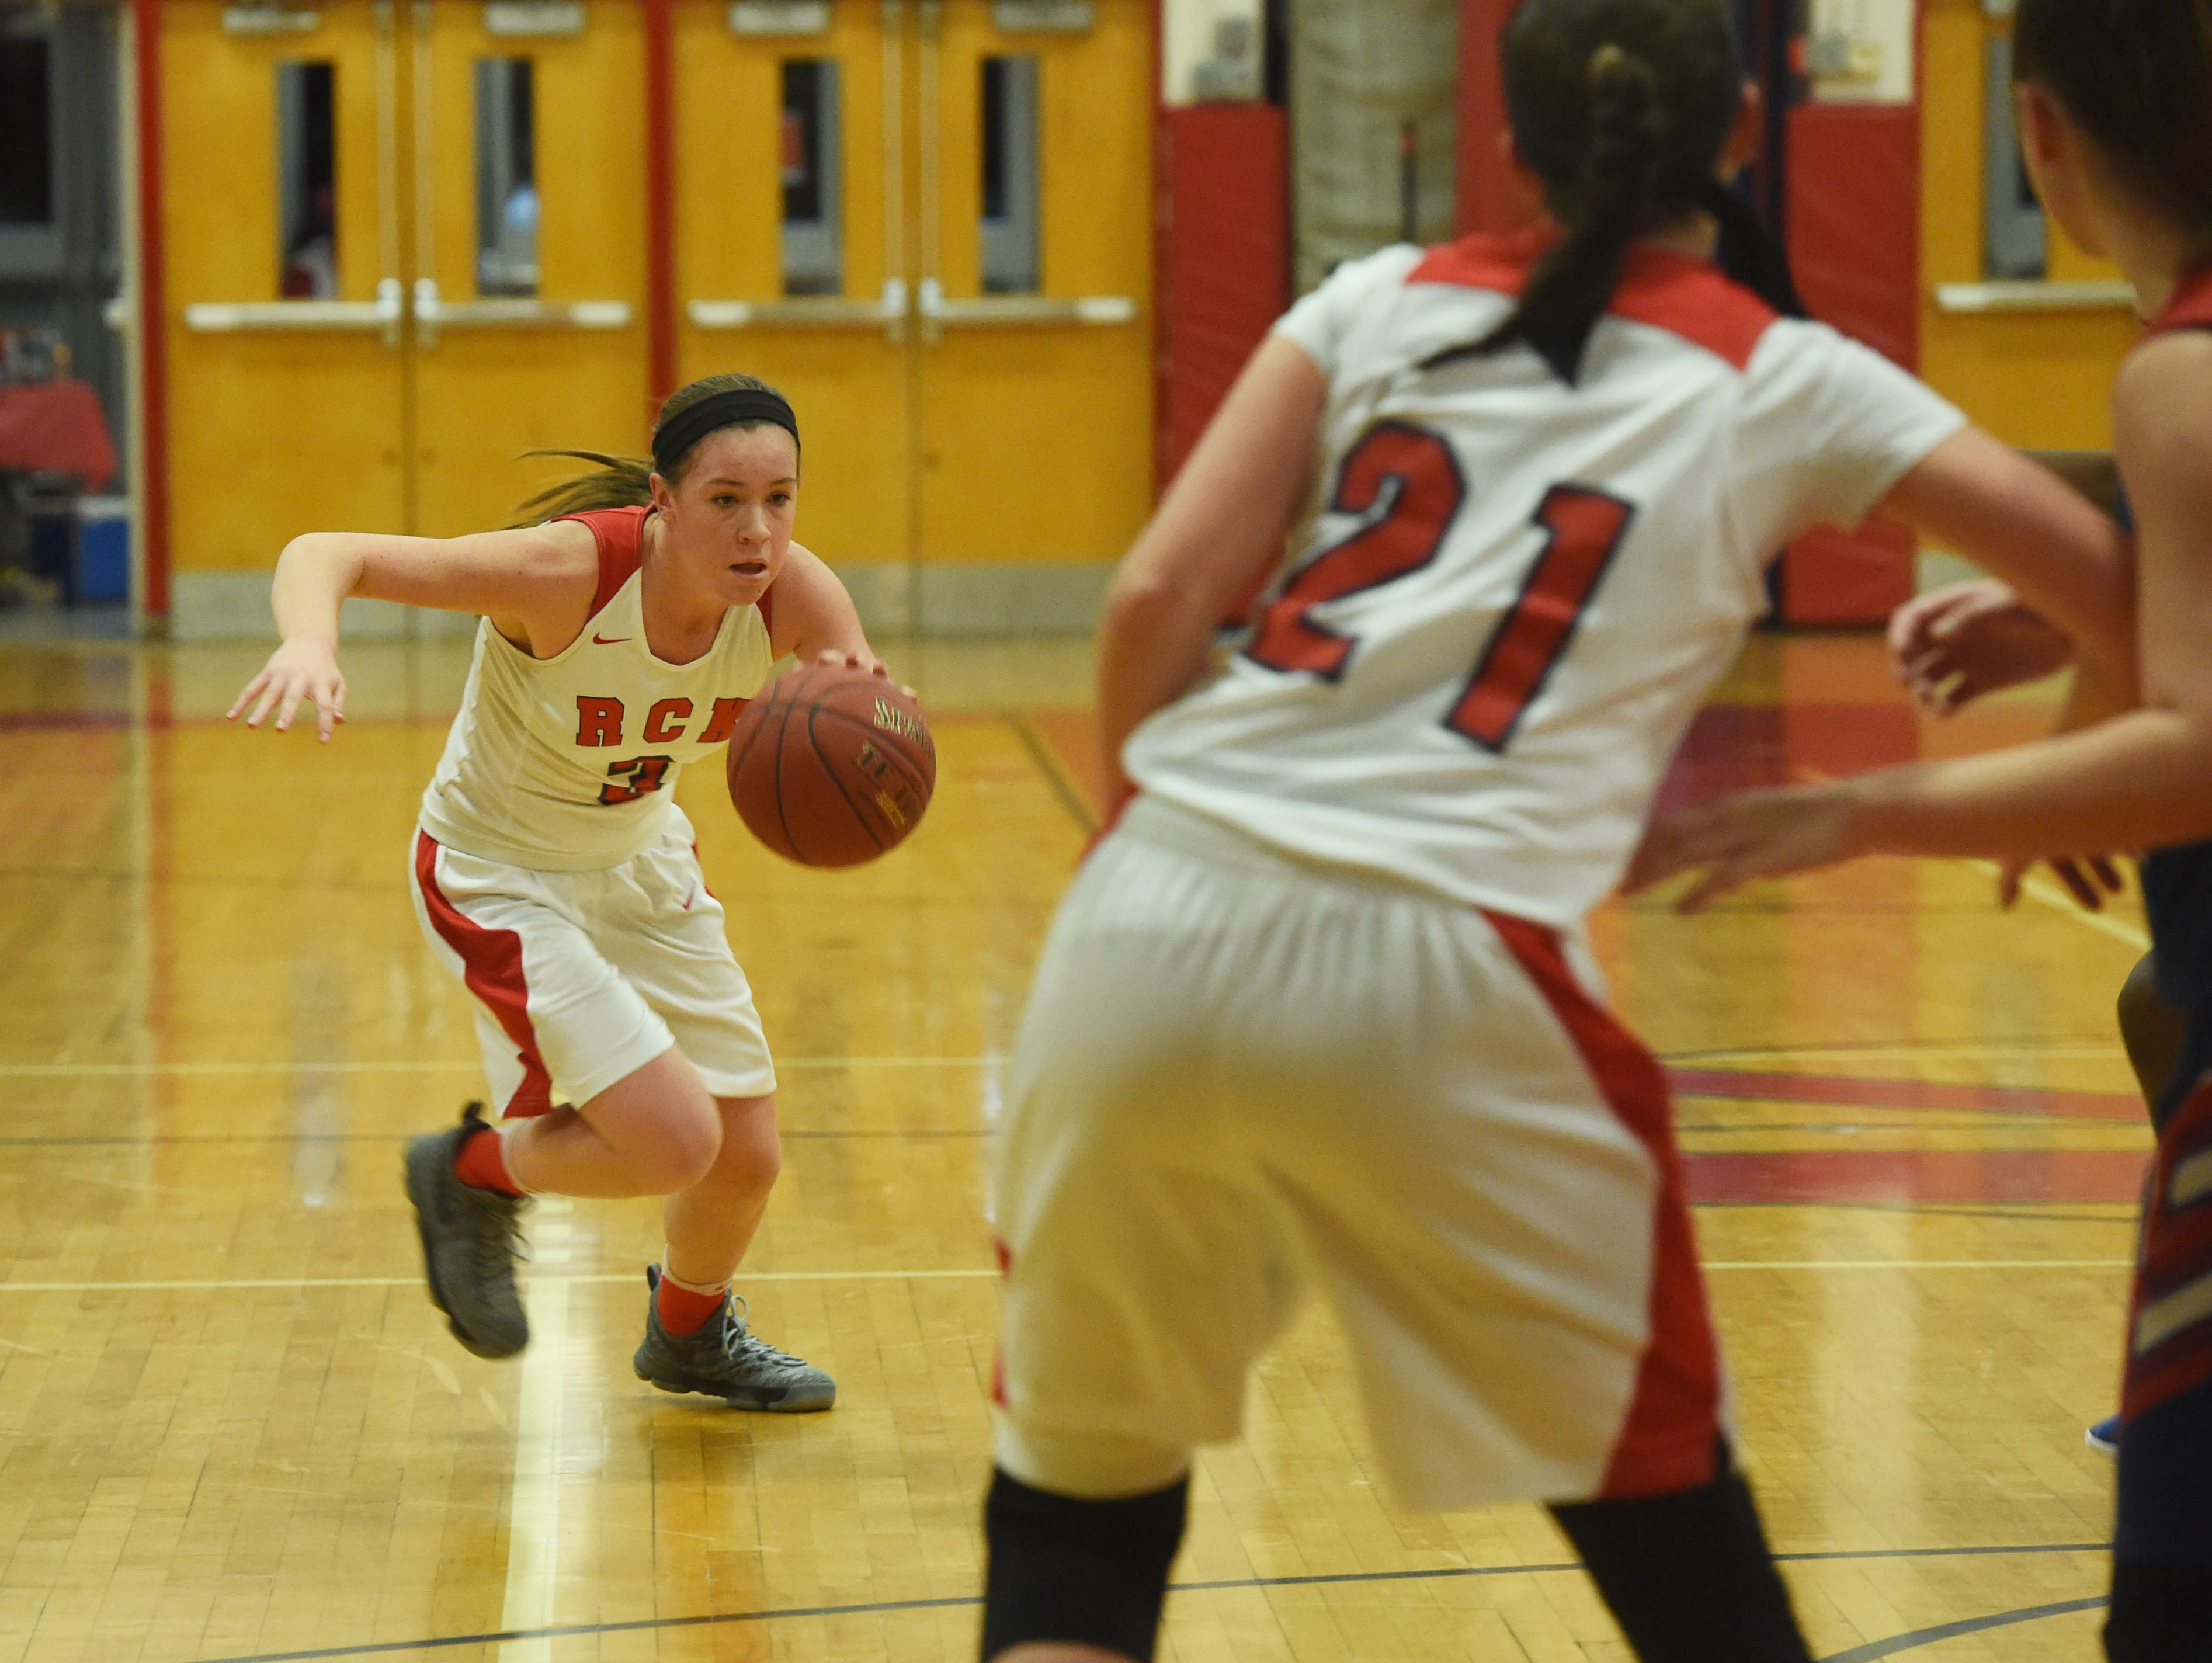 Ketcham's Katie Wall, left, takes the ball down the court during Wednesday's game against Carmel.